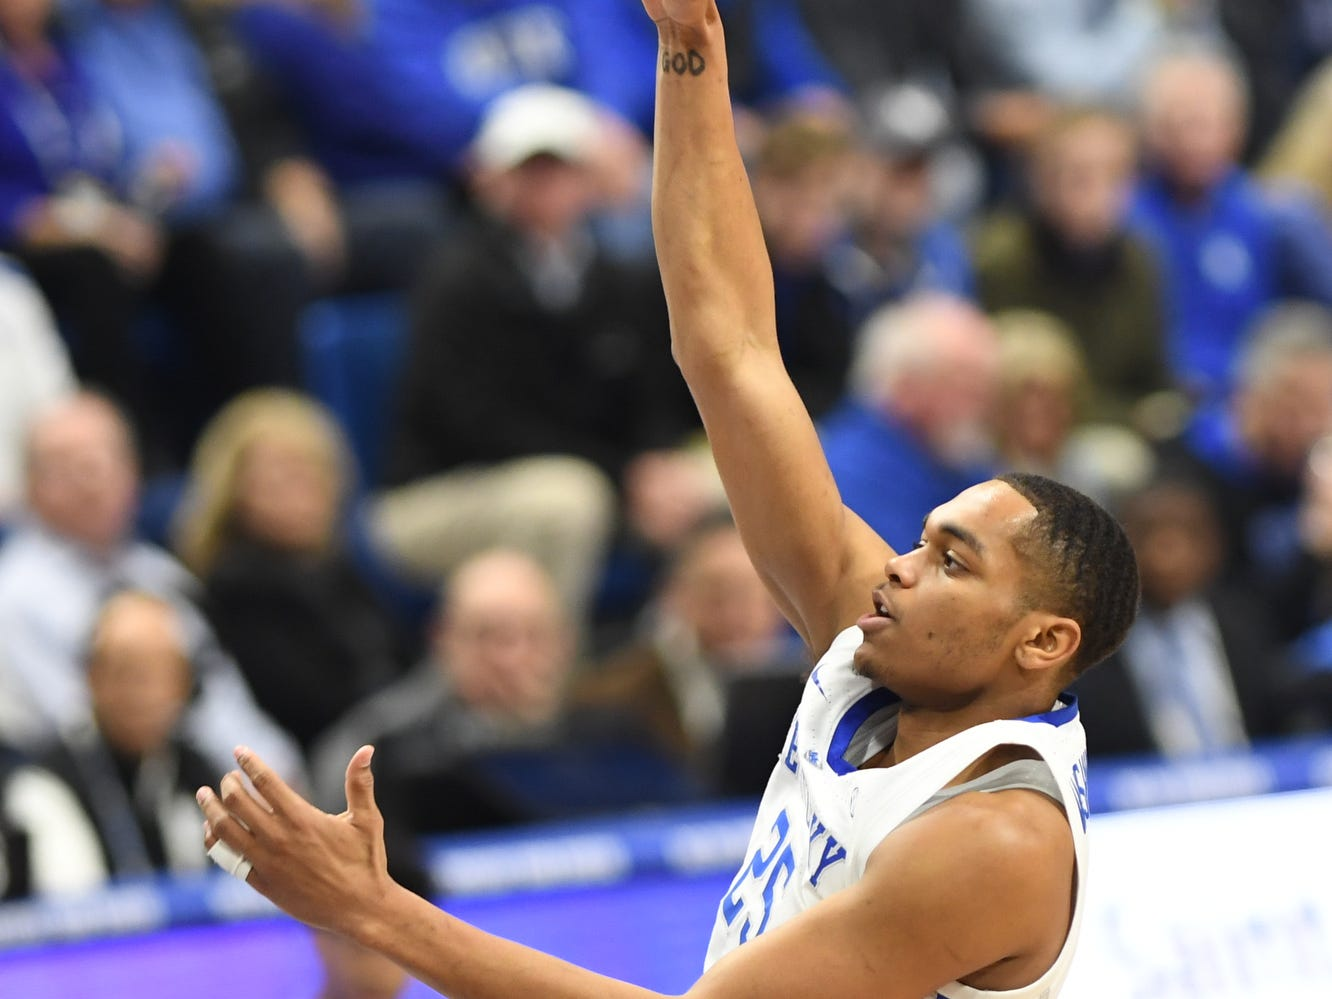 UK forward PJ Washington puts up a shot during the University of Kentucky men's basketball game against Utah at Rupp Arena in Lexington, Kentucky, on Saturday, Dec. 15, 2018.